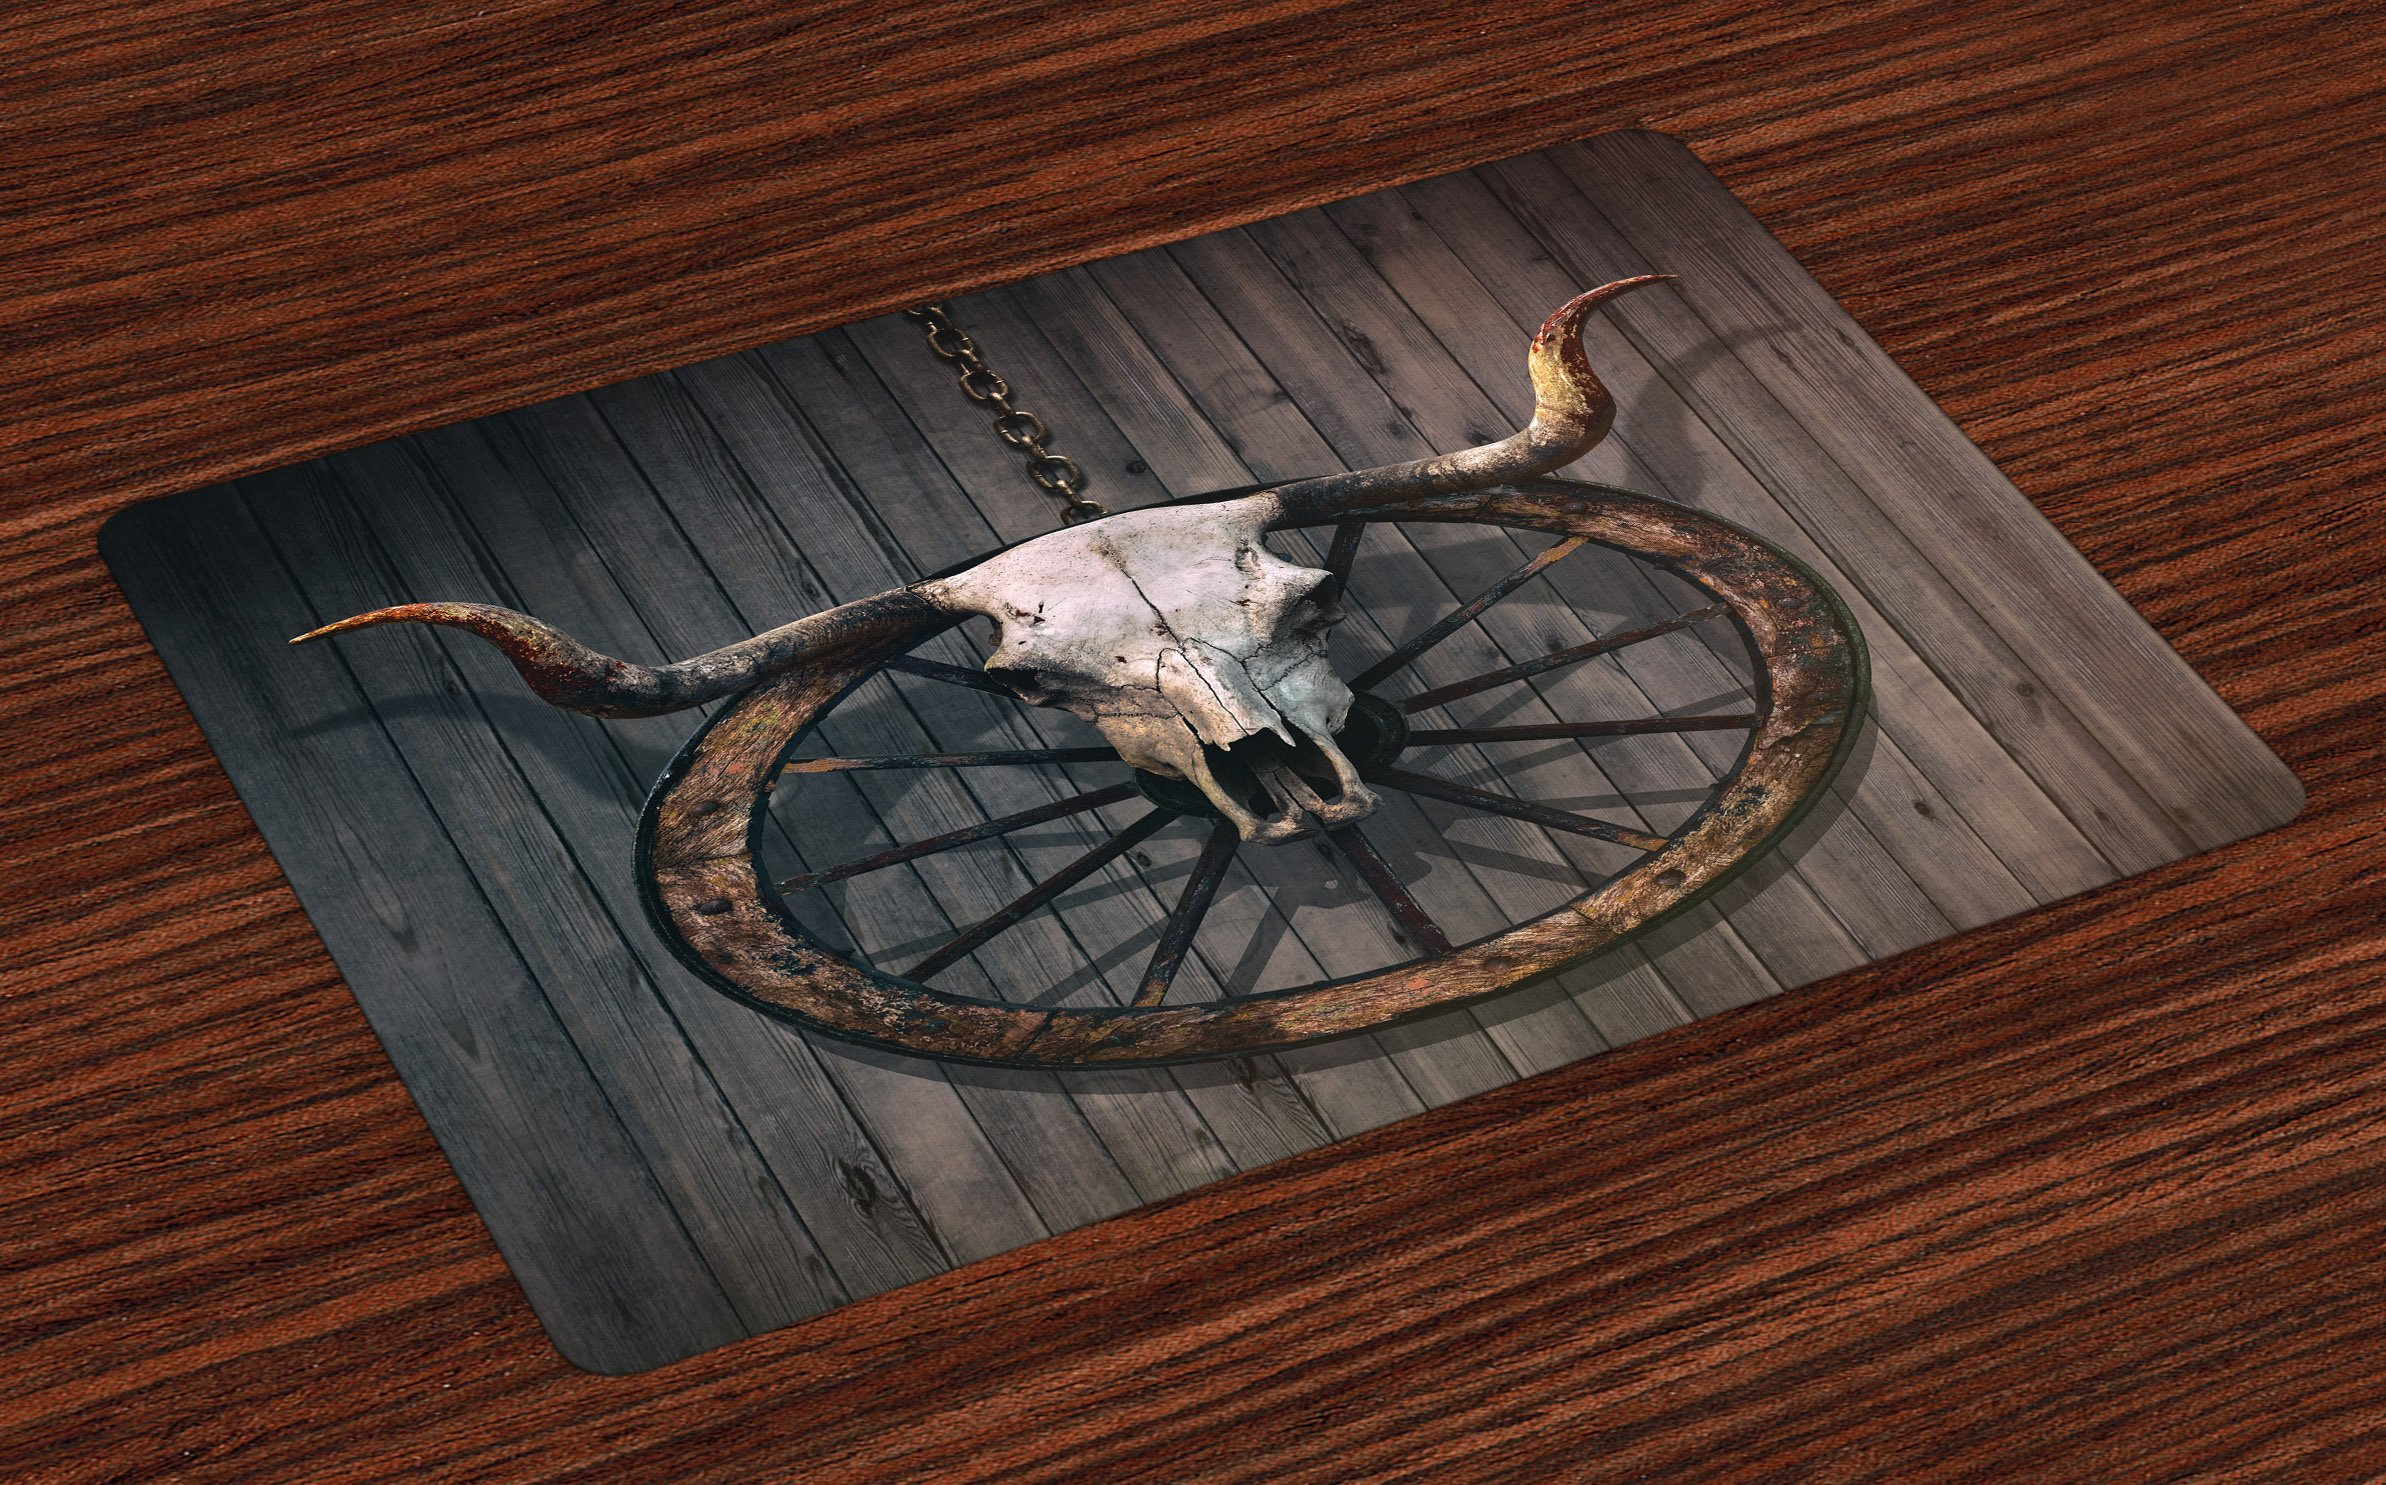 Ambesonne Barn Wood Wagon Wheel Place Mats Set of 4, Long Horned Bull Skull and Old West Wagon Wheel on Rustic Wall, Washable Fabric Placemats for Dining Room Kitchen Table Decor, Black Brown White by Ambesonne (Image #4)